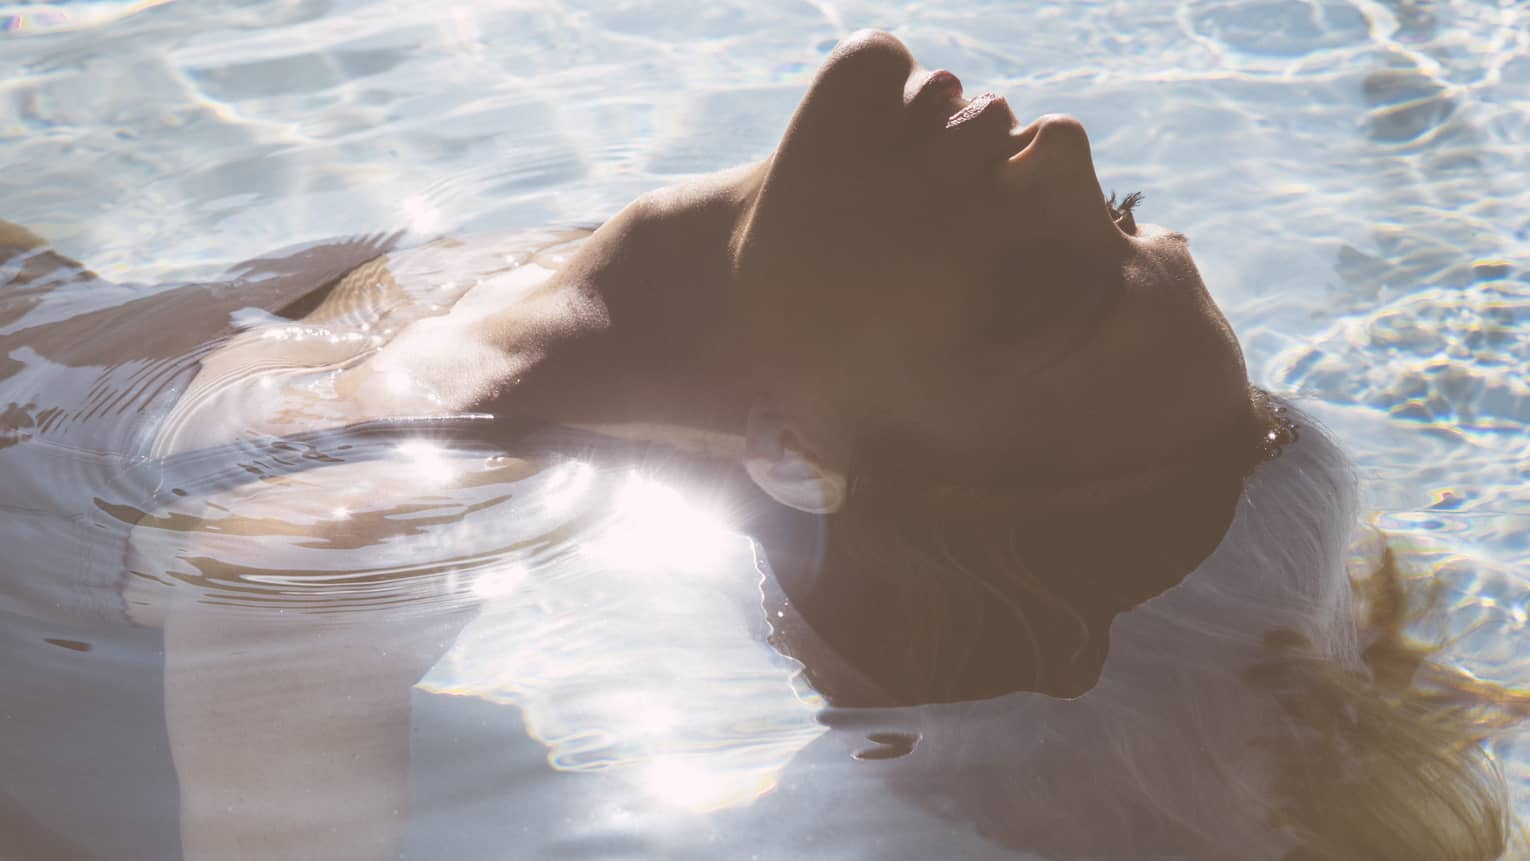 Close-up of woman's head as she floats on her back in pool, sunlight reflecting, her hair flowing in water